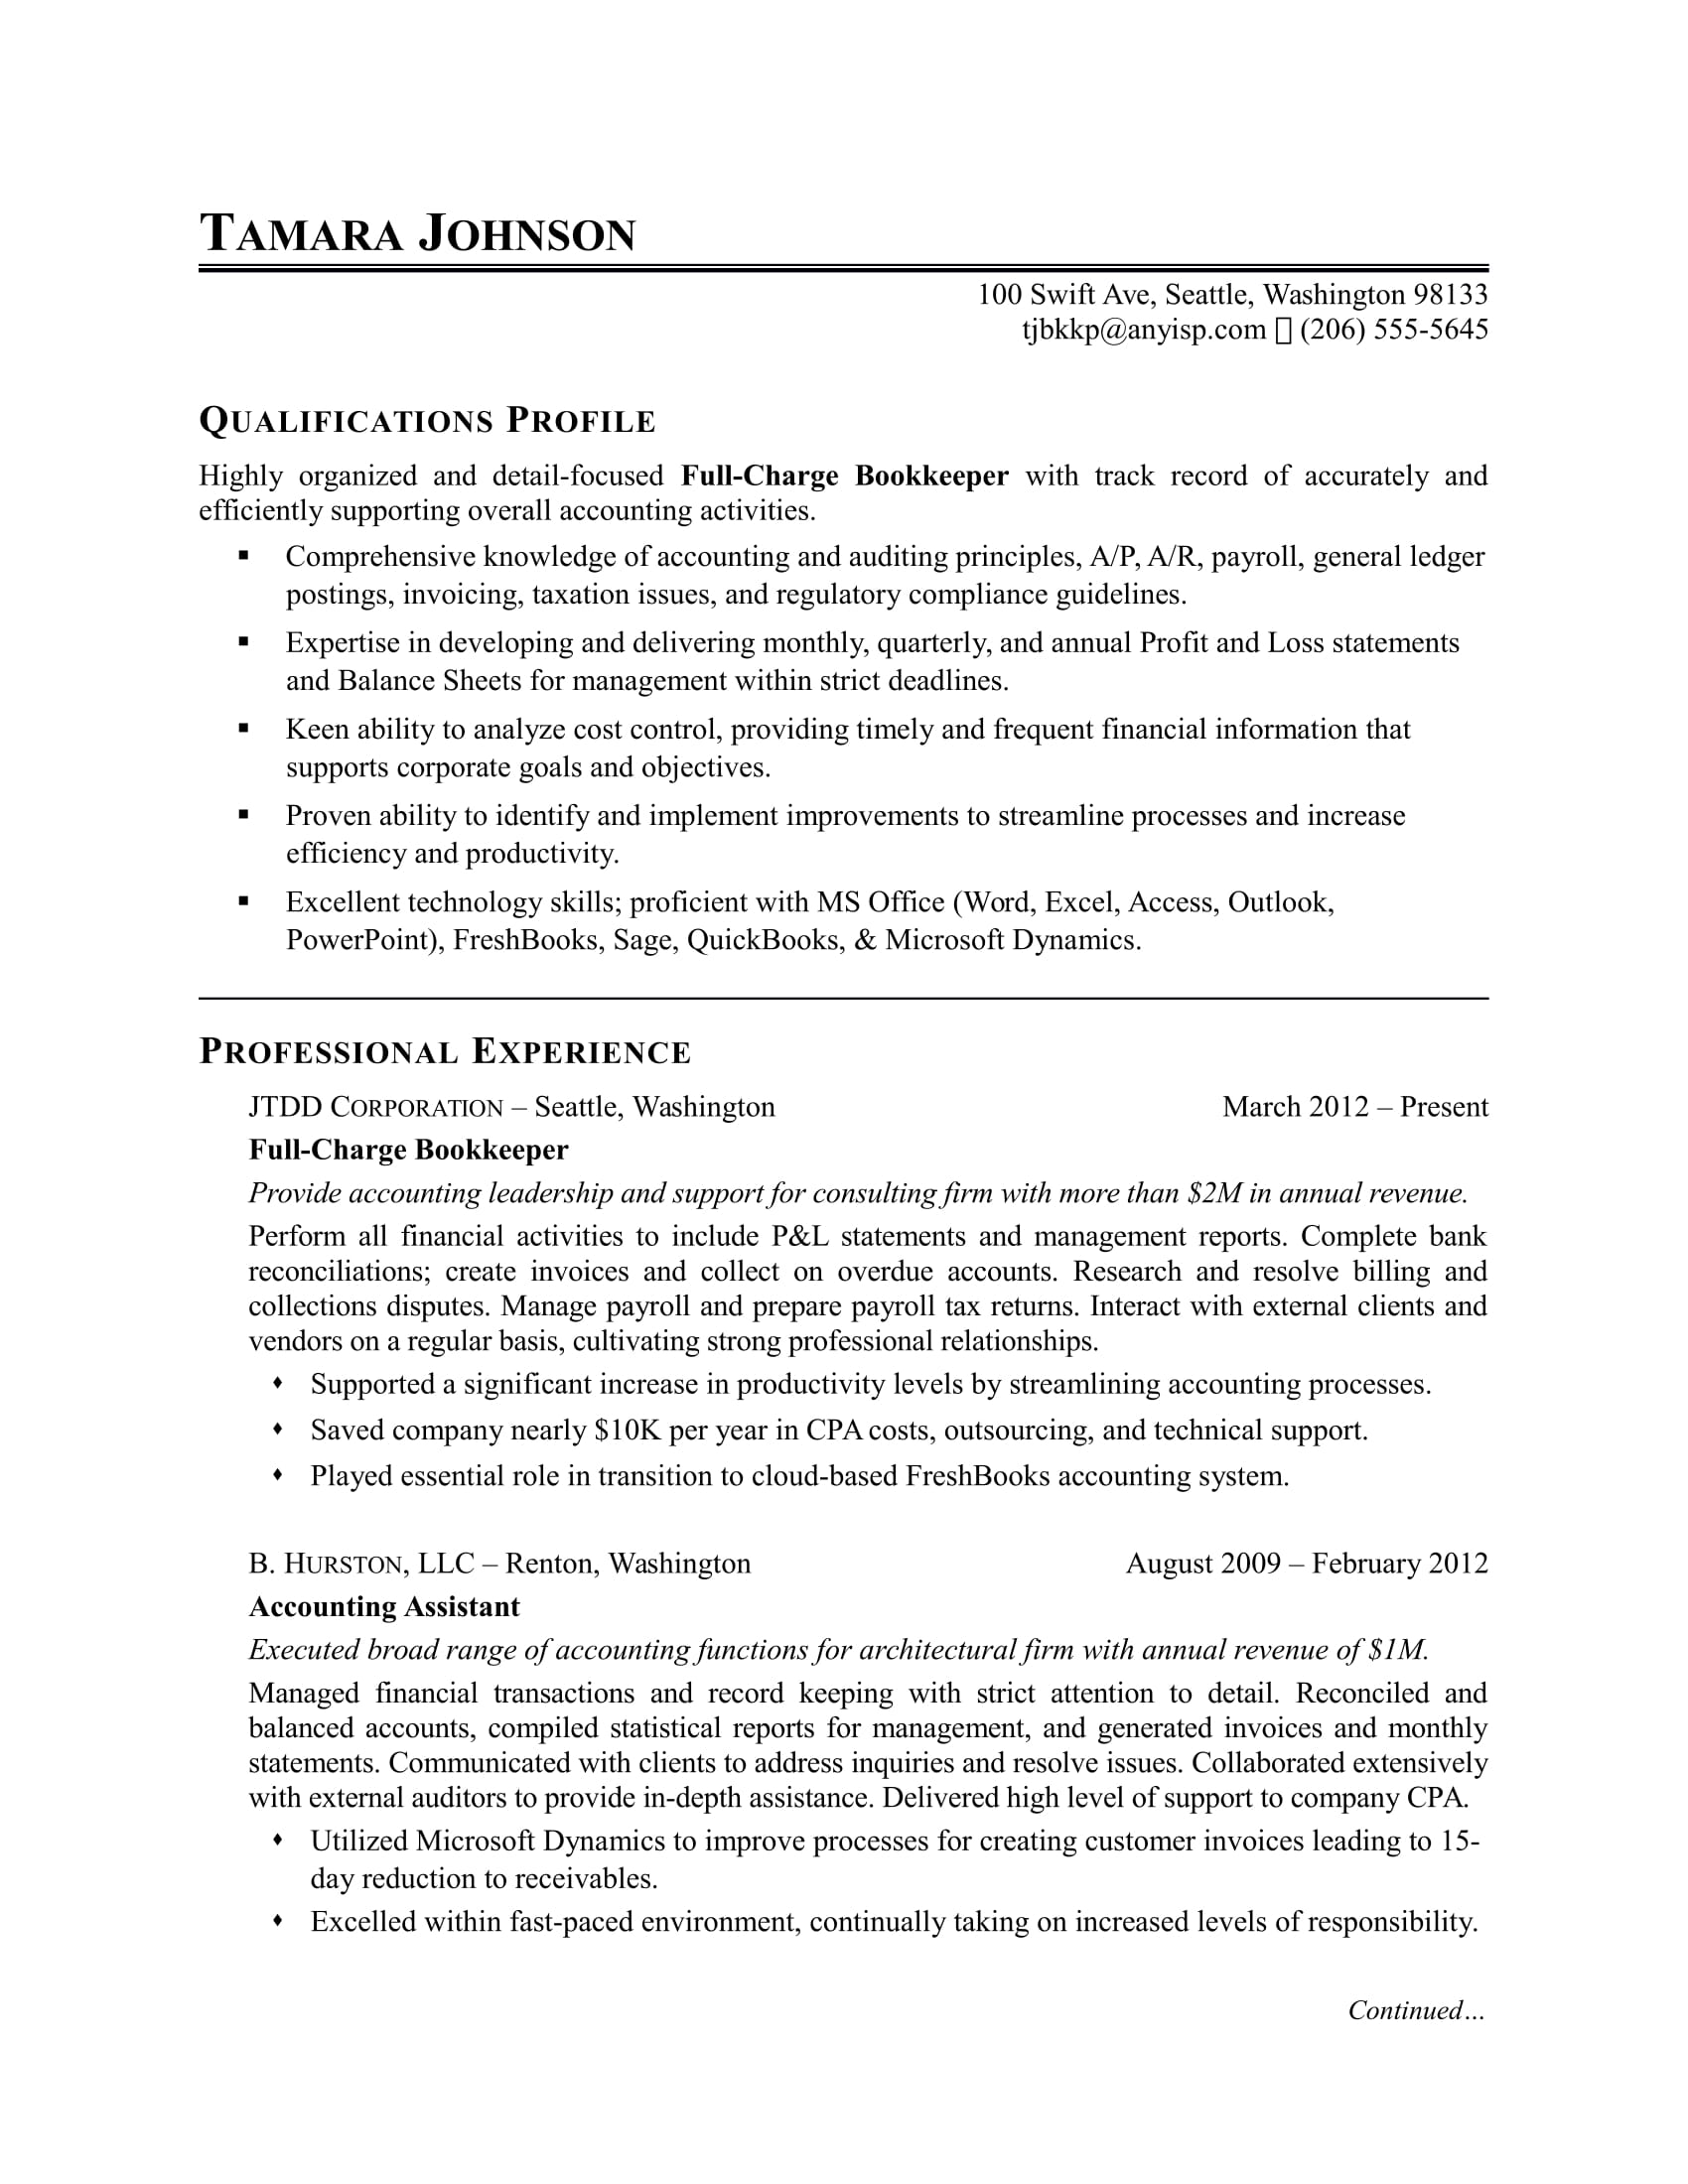 Bookkeeper Resume Sample Monstercom - Sample invoice for bookkeeping services